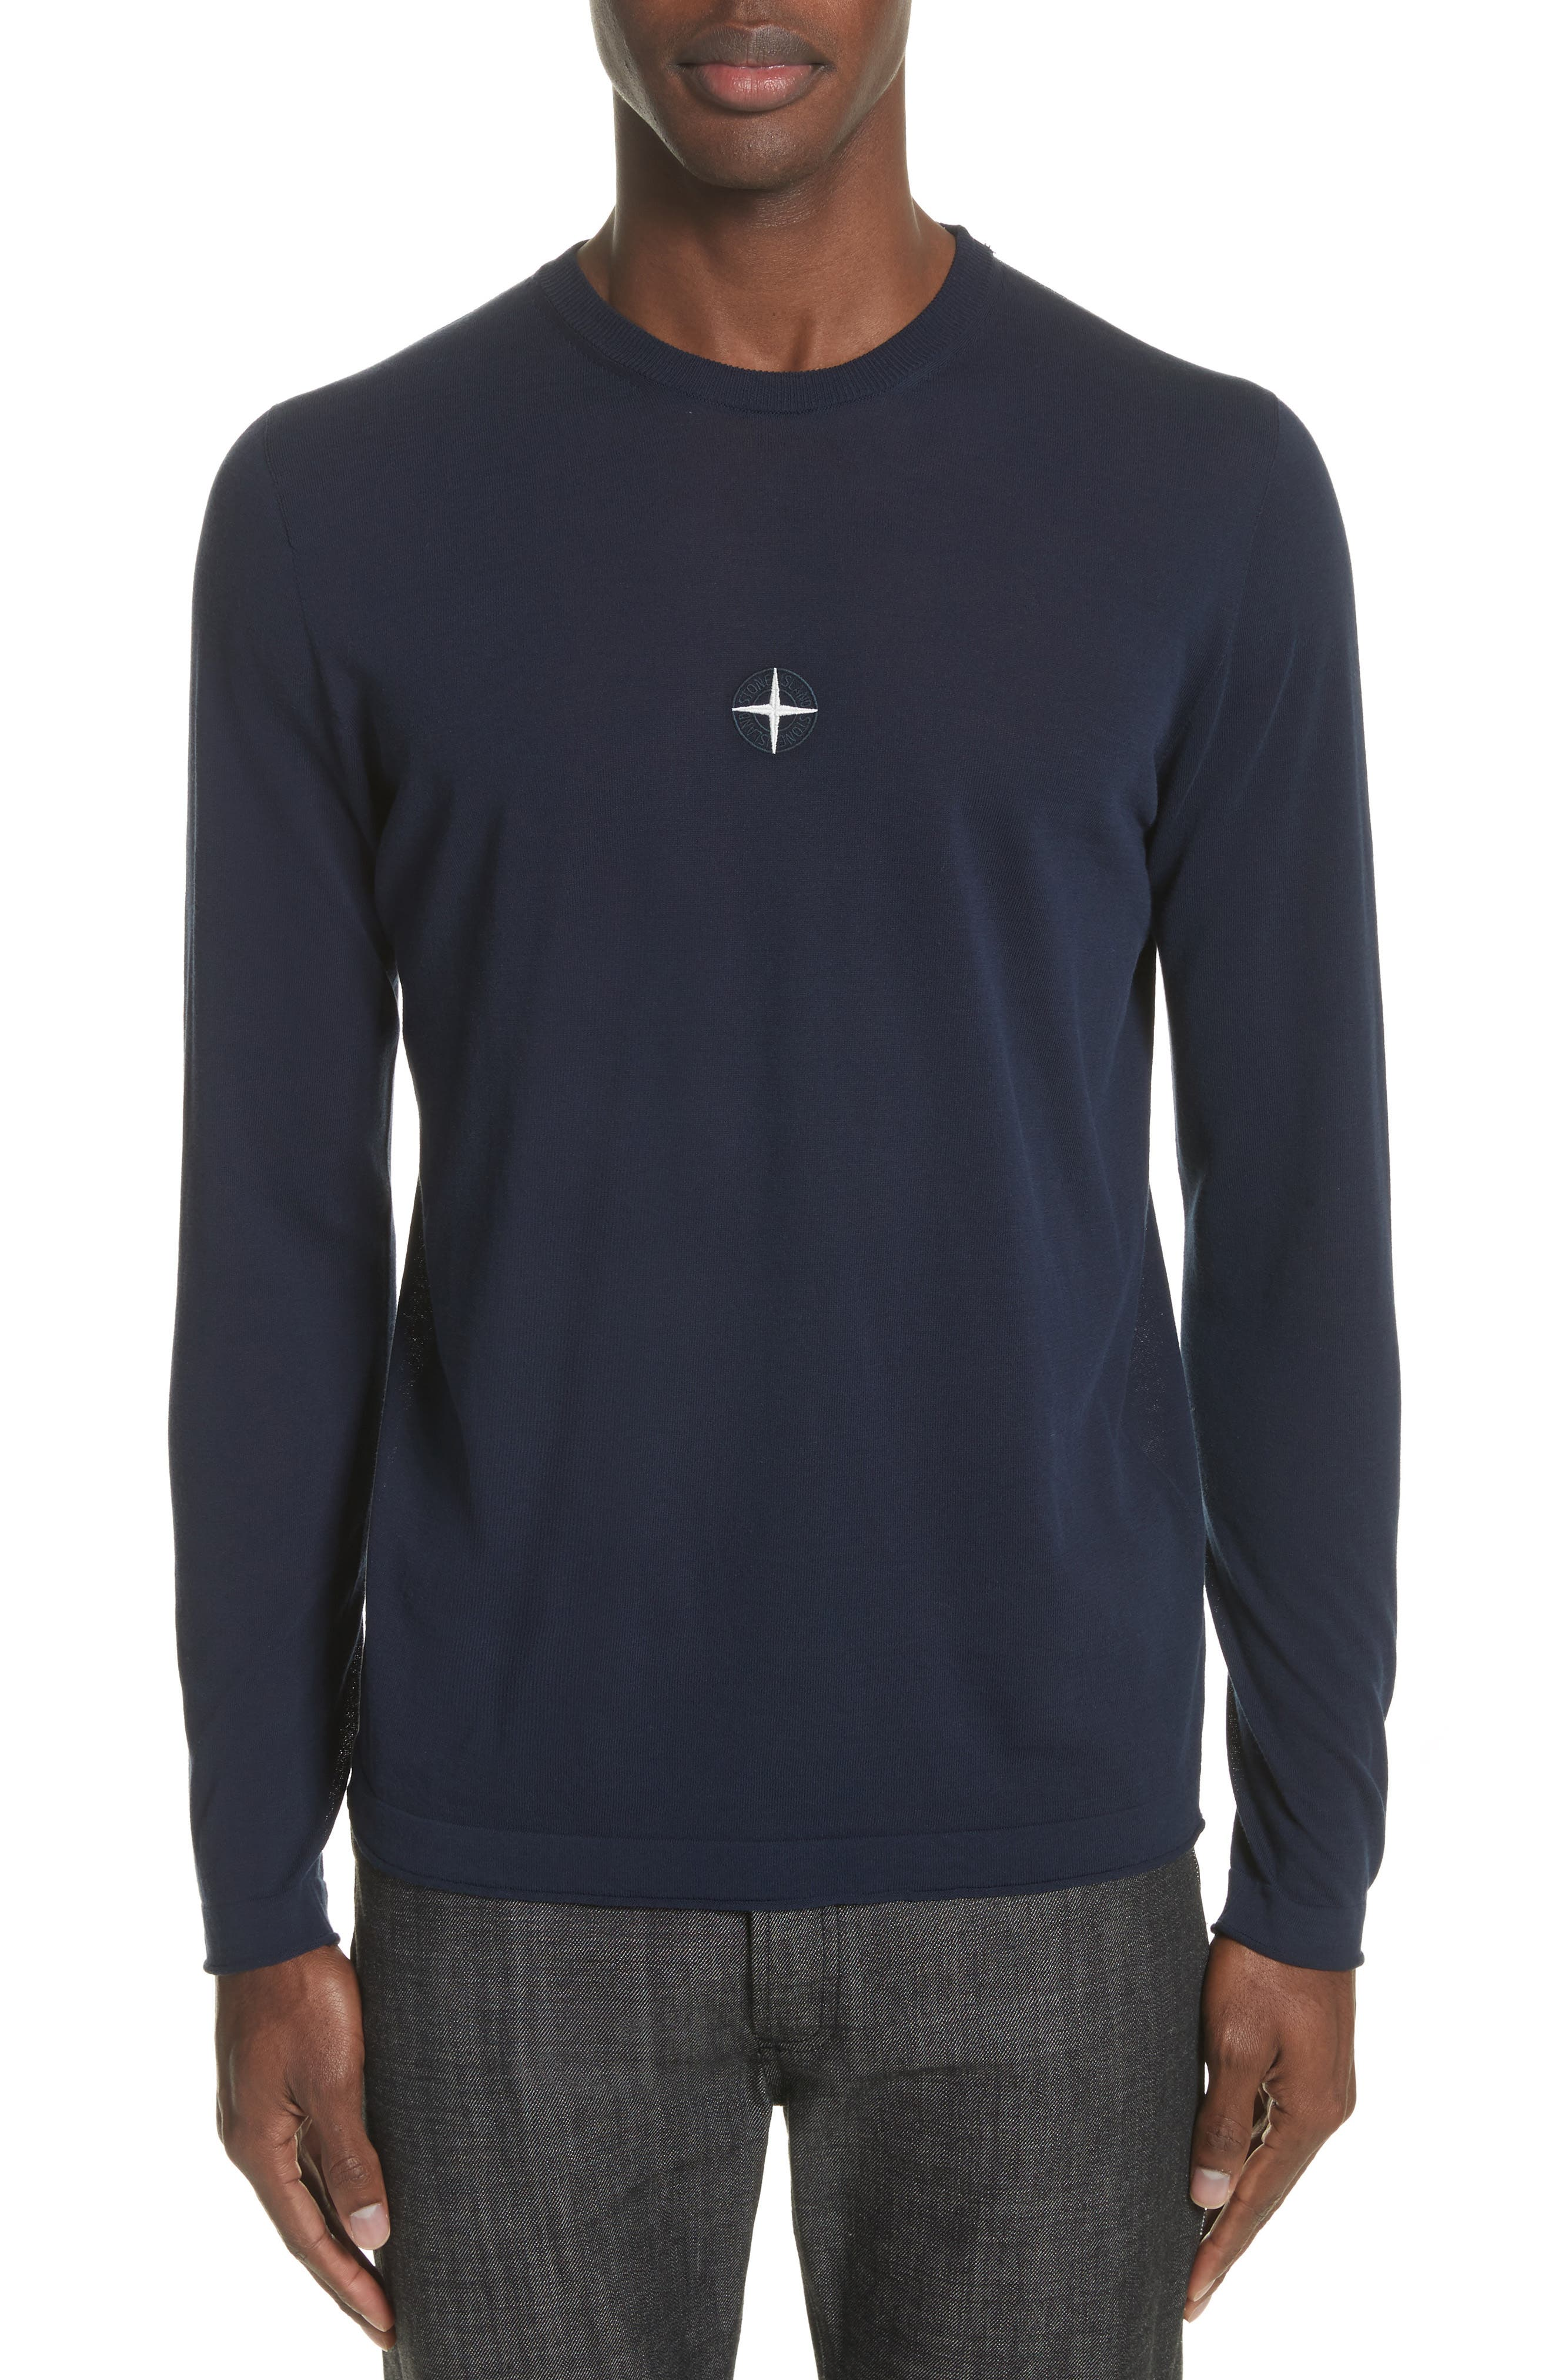 Embroidered Crest Sweater,                         Main,                         color, Blue